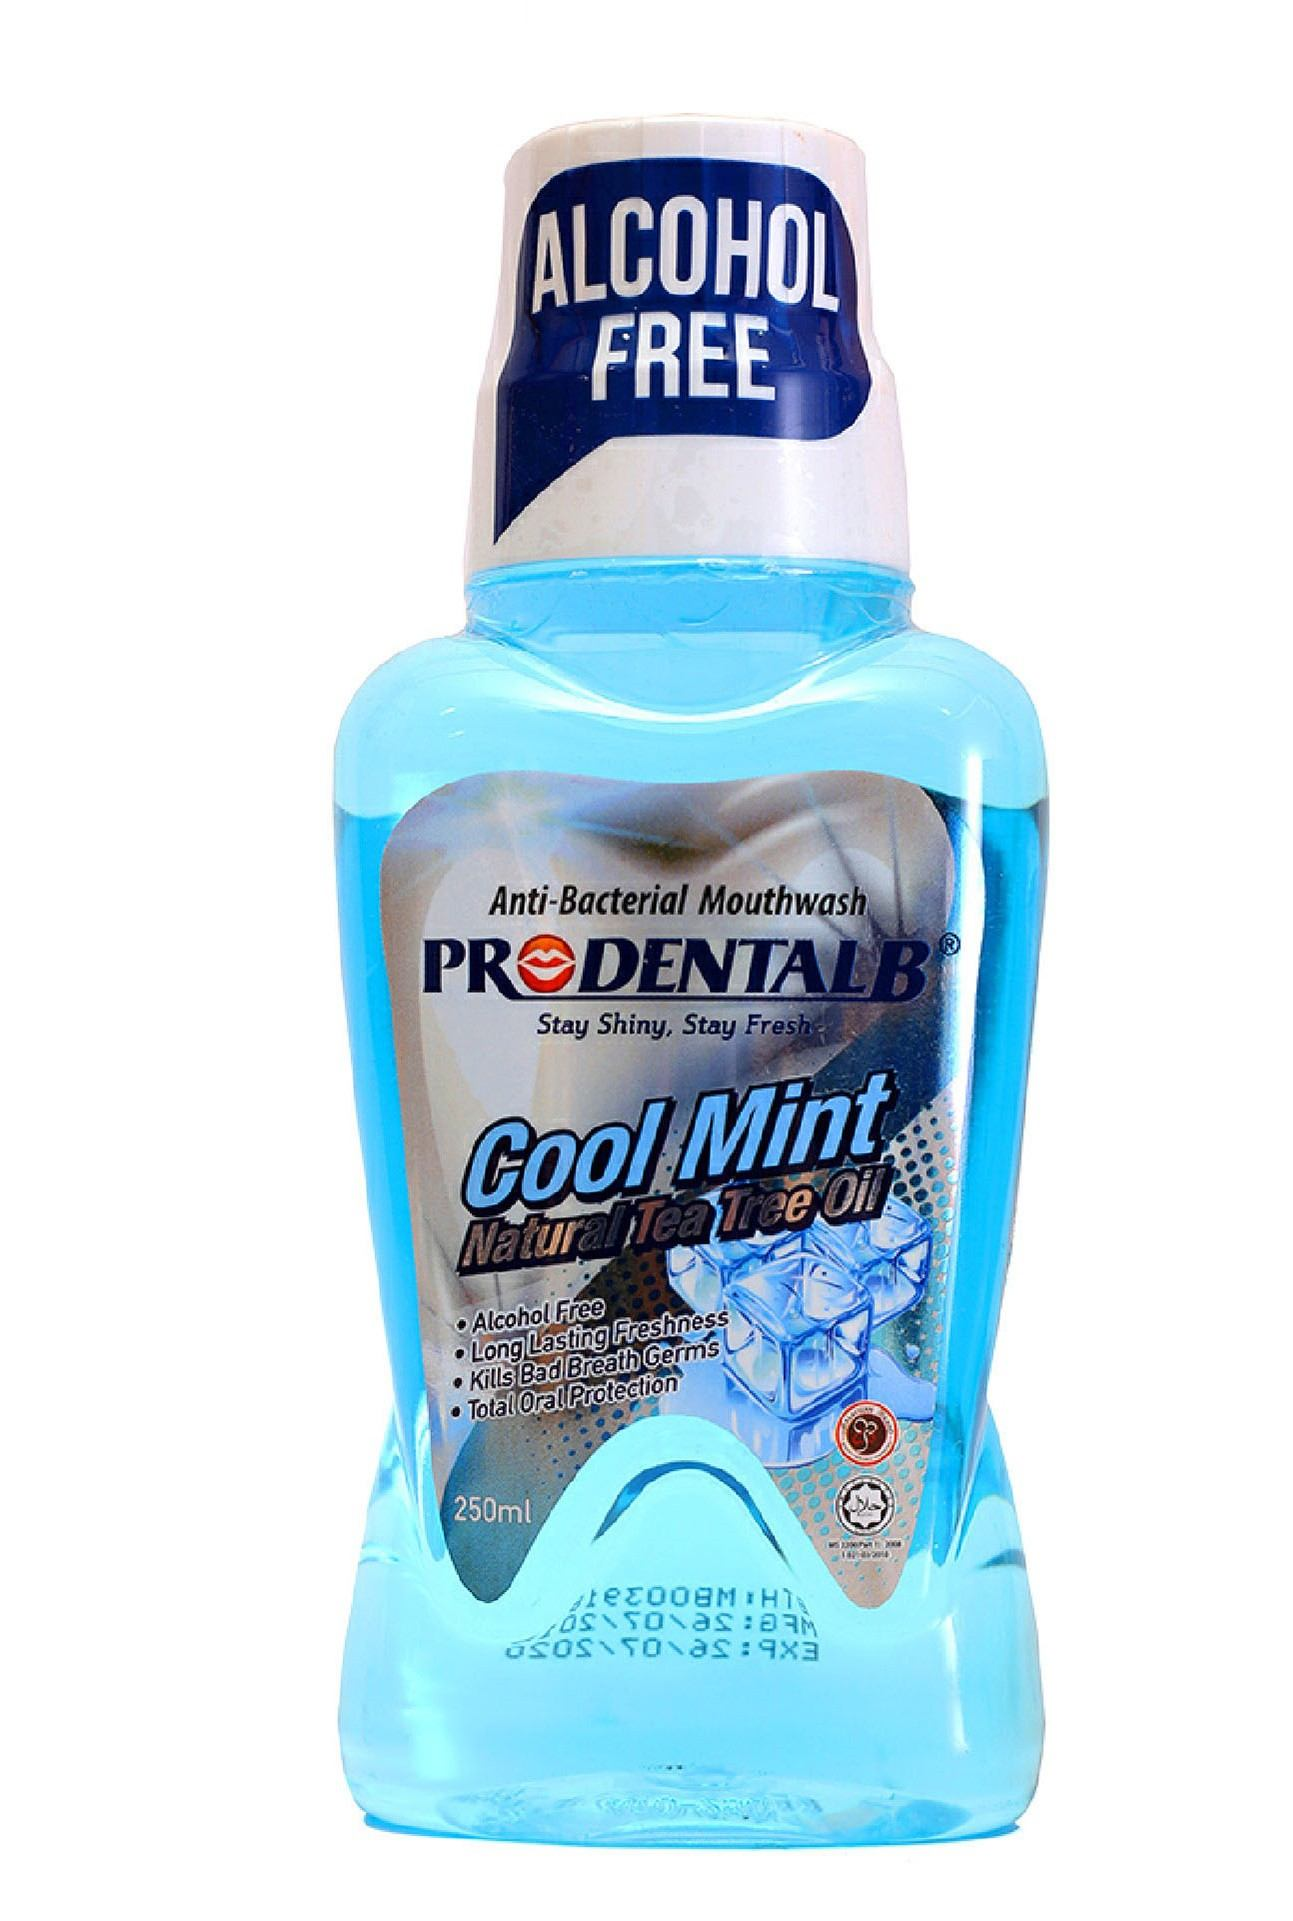 Prodental B Cool mint mouth wash 250 ml